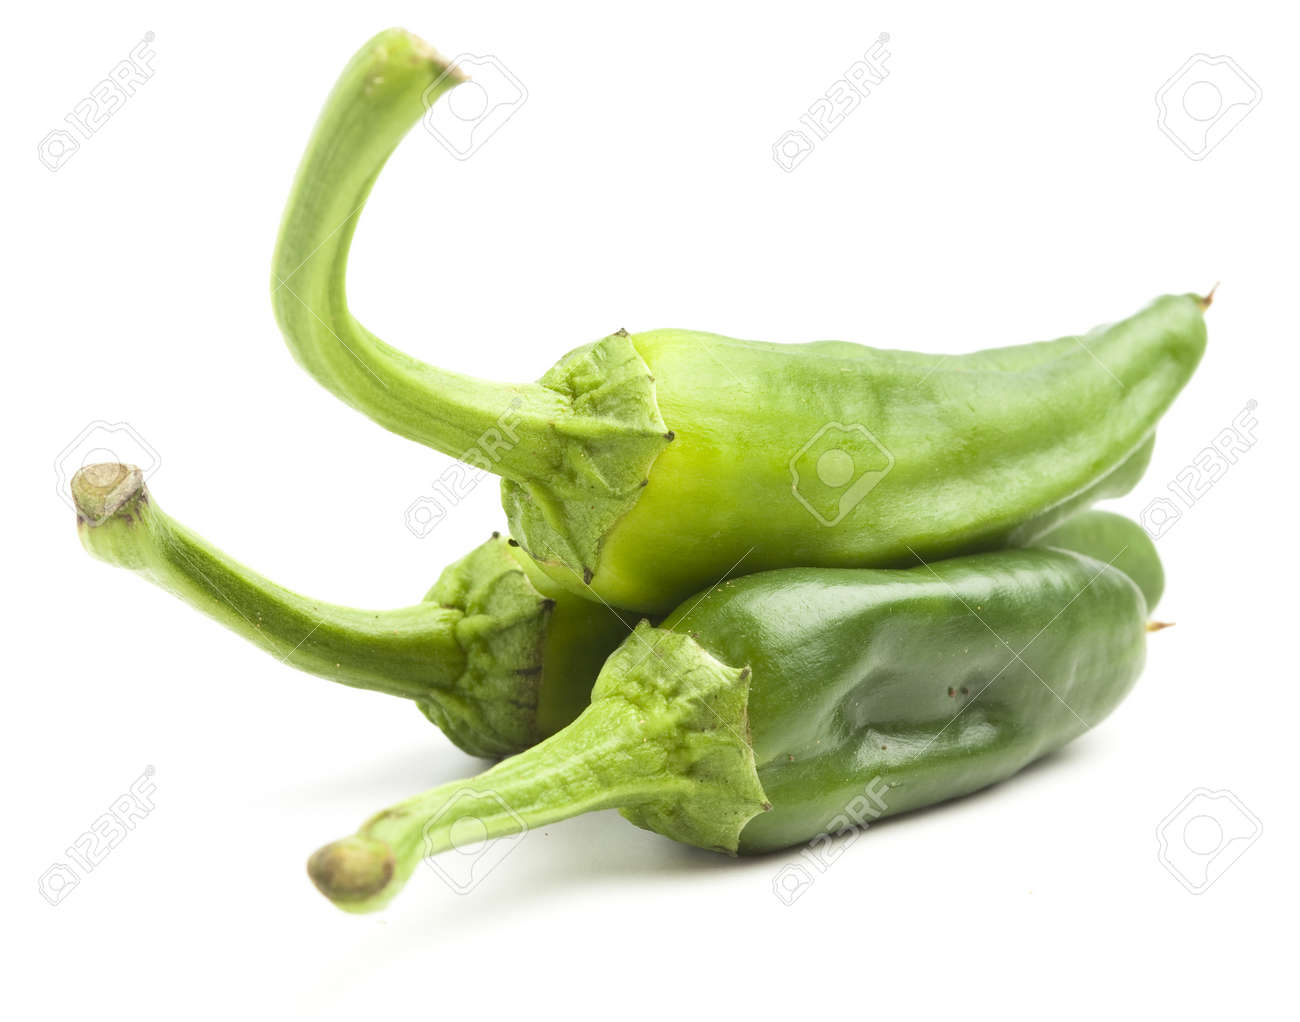 green peppers pile isolated on a white background Stock Photo - 8771718